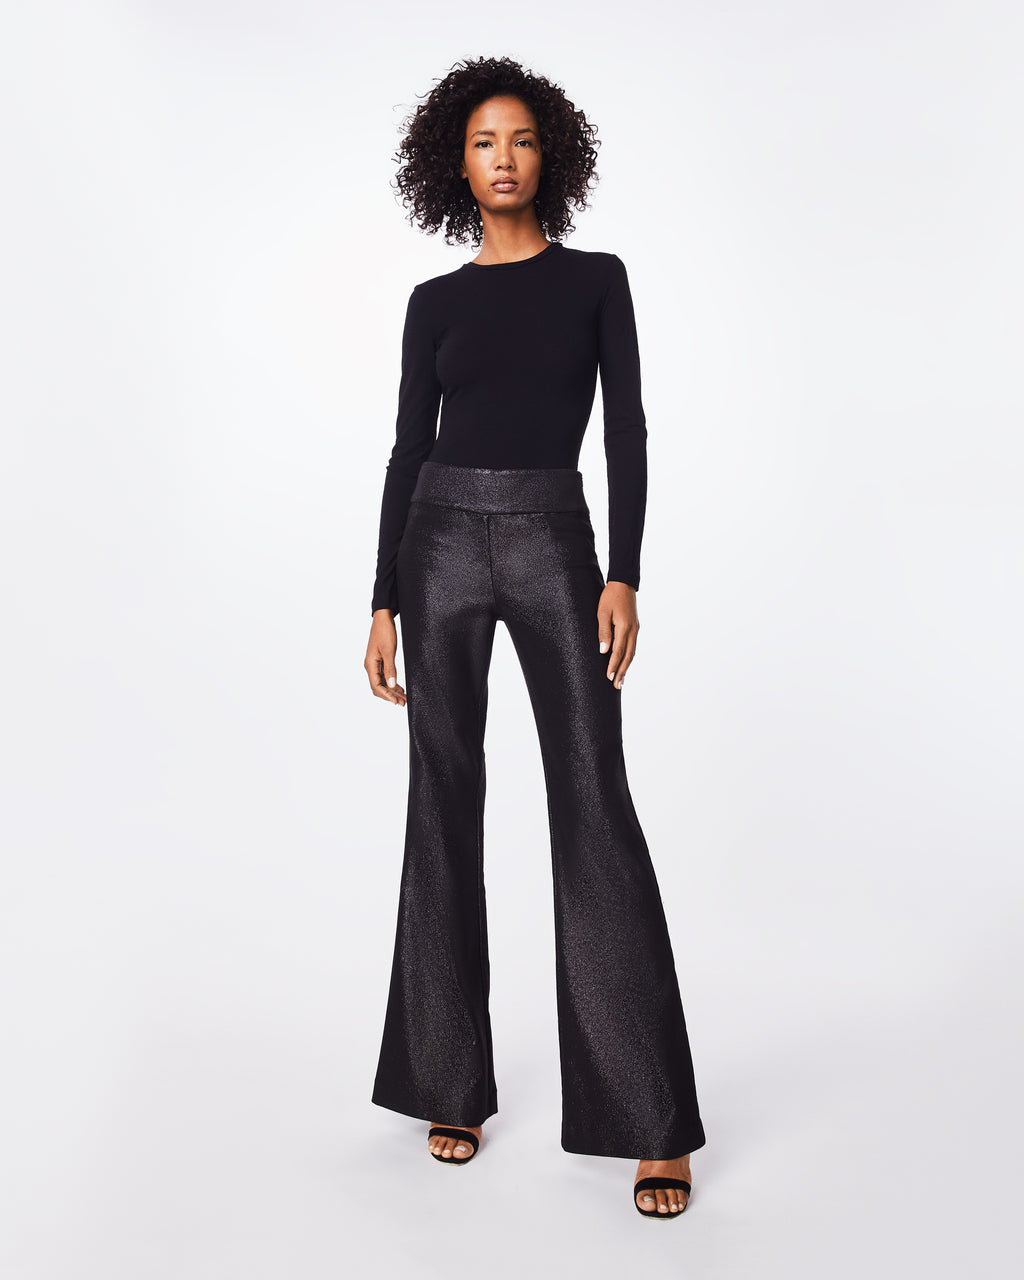 "BH10411 - SPARKLE STRETCH WIDE LEG PANT - bottoms - pants - A shimmery staple, these high-waisted, lined, and flared pants feature a 7"" metal side zipper. Retro-cool inspired."